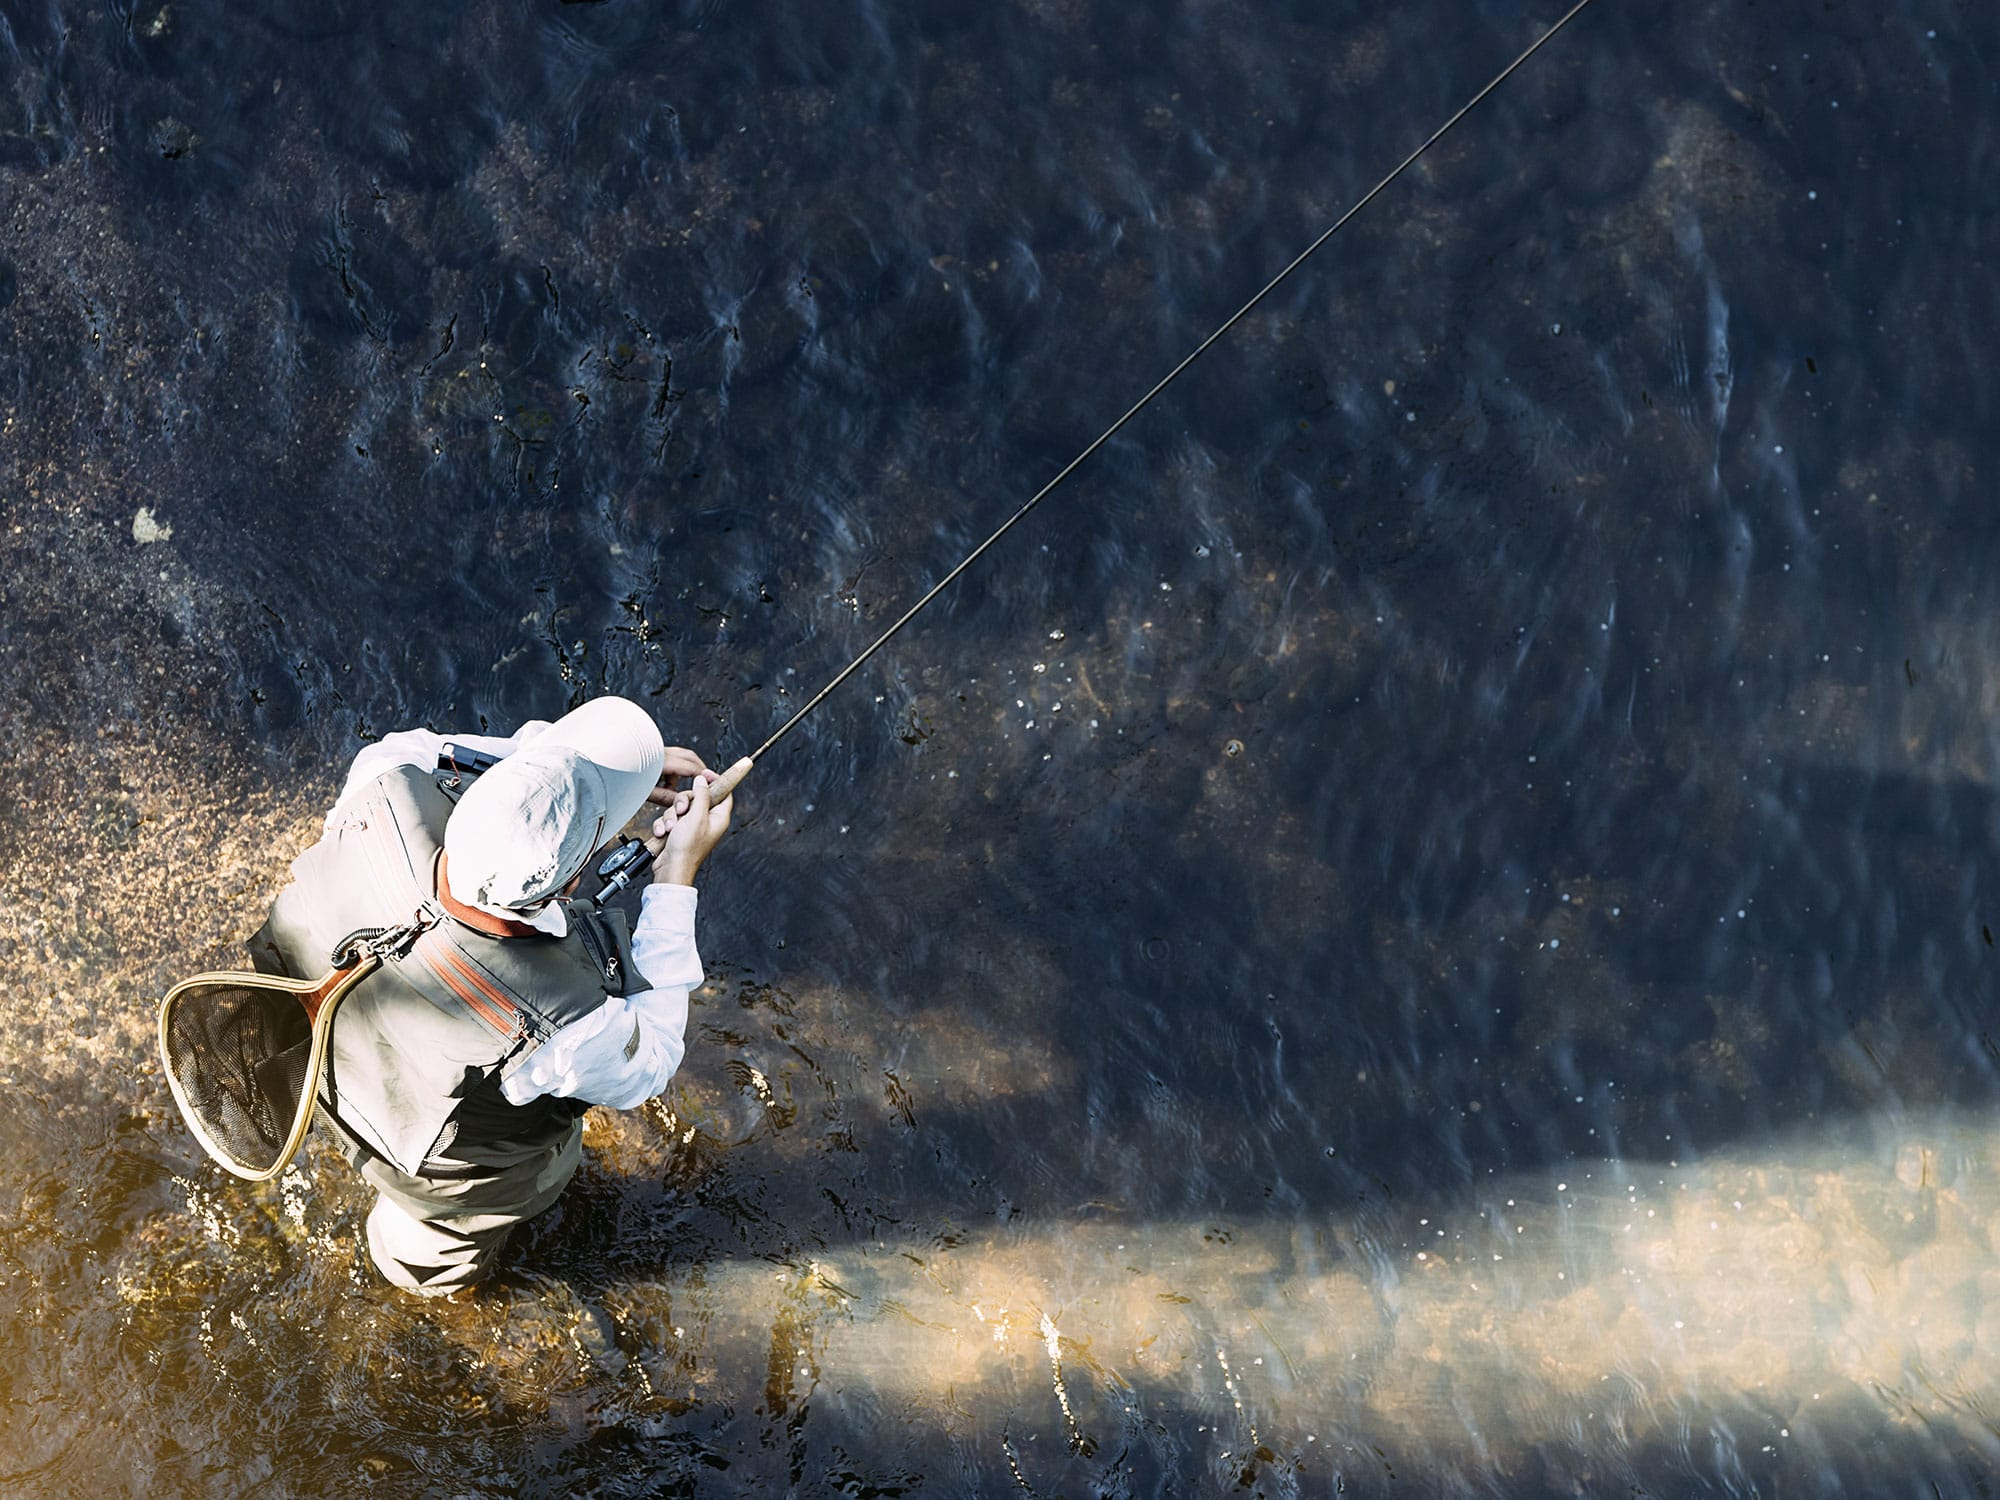 Fly fisherman in the river